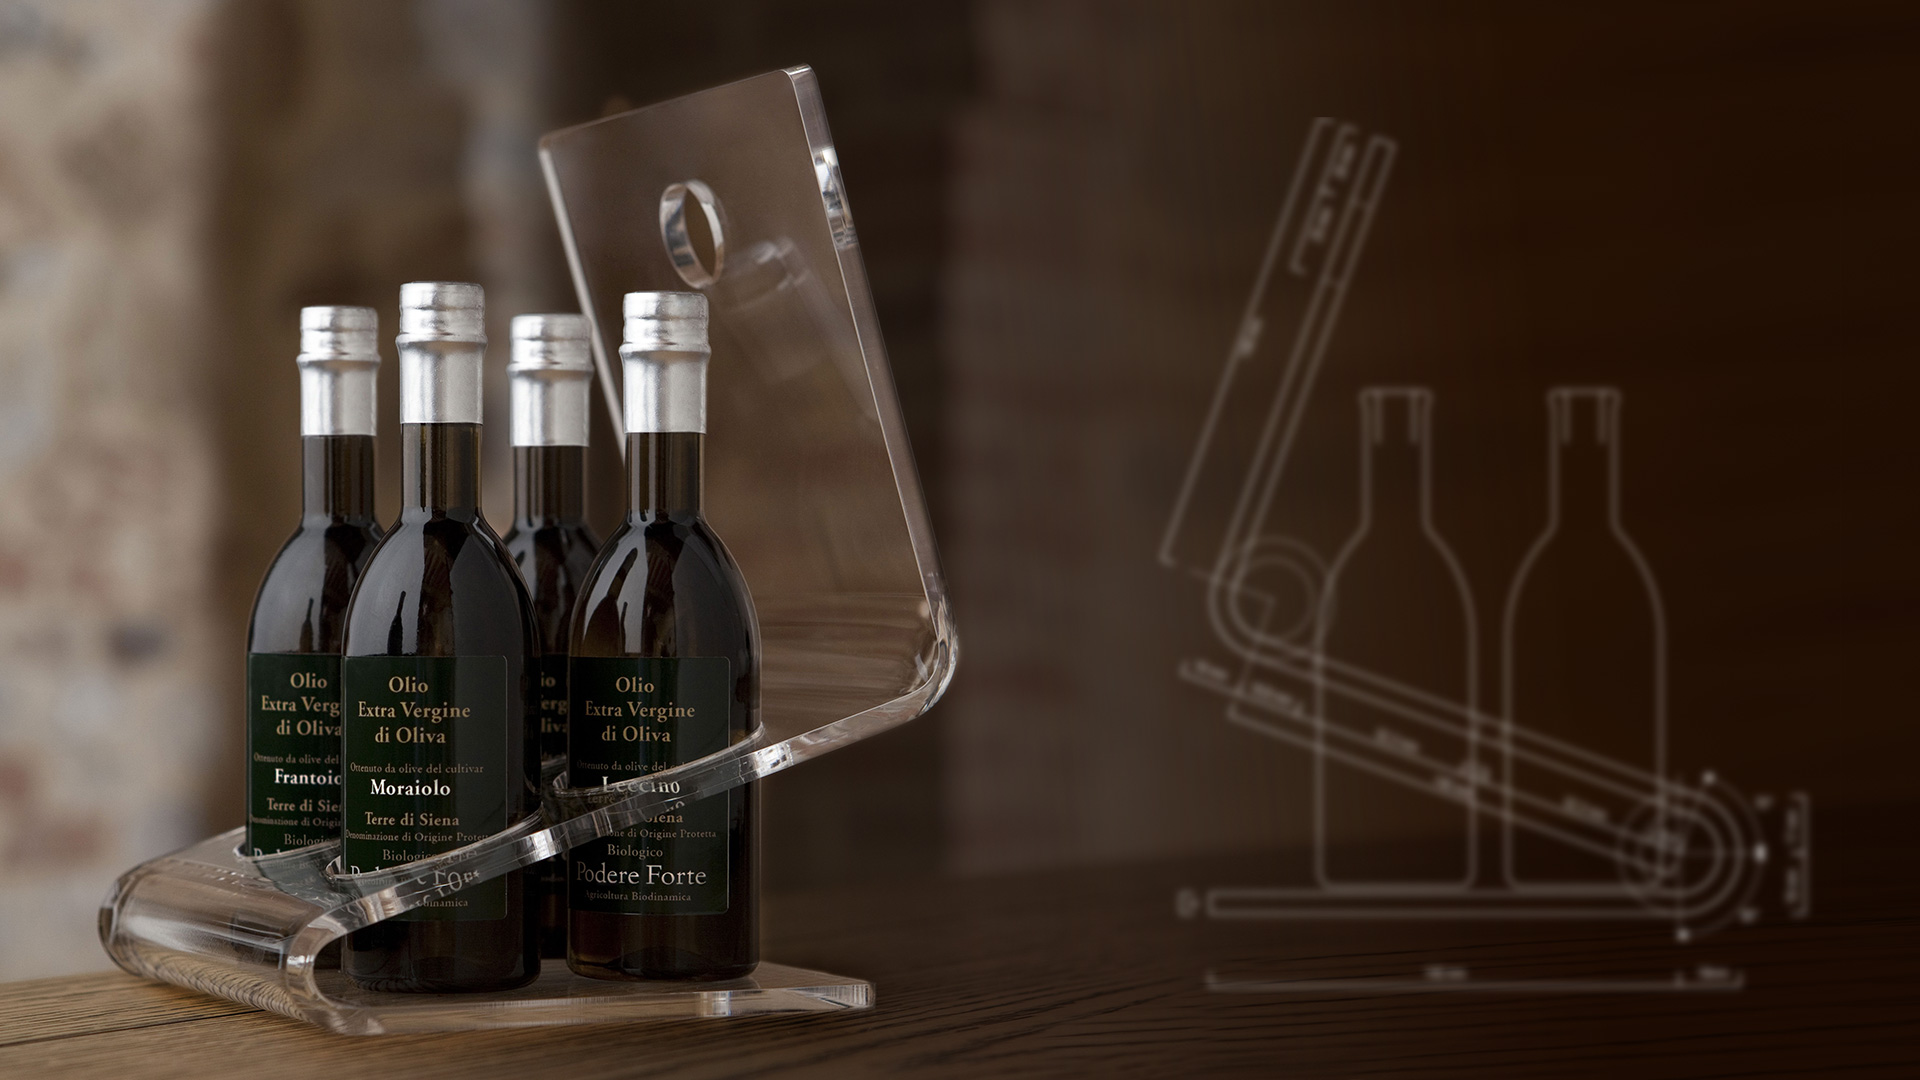 Podere Forte olio espositore packaging